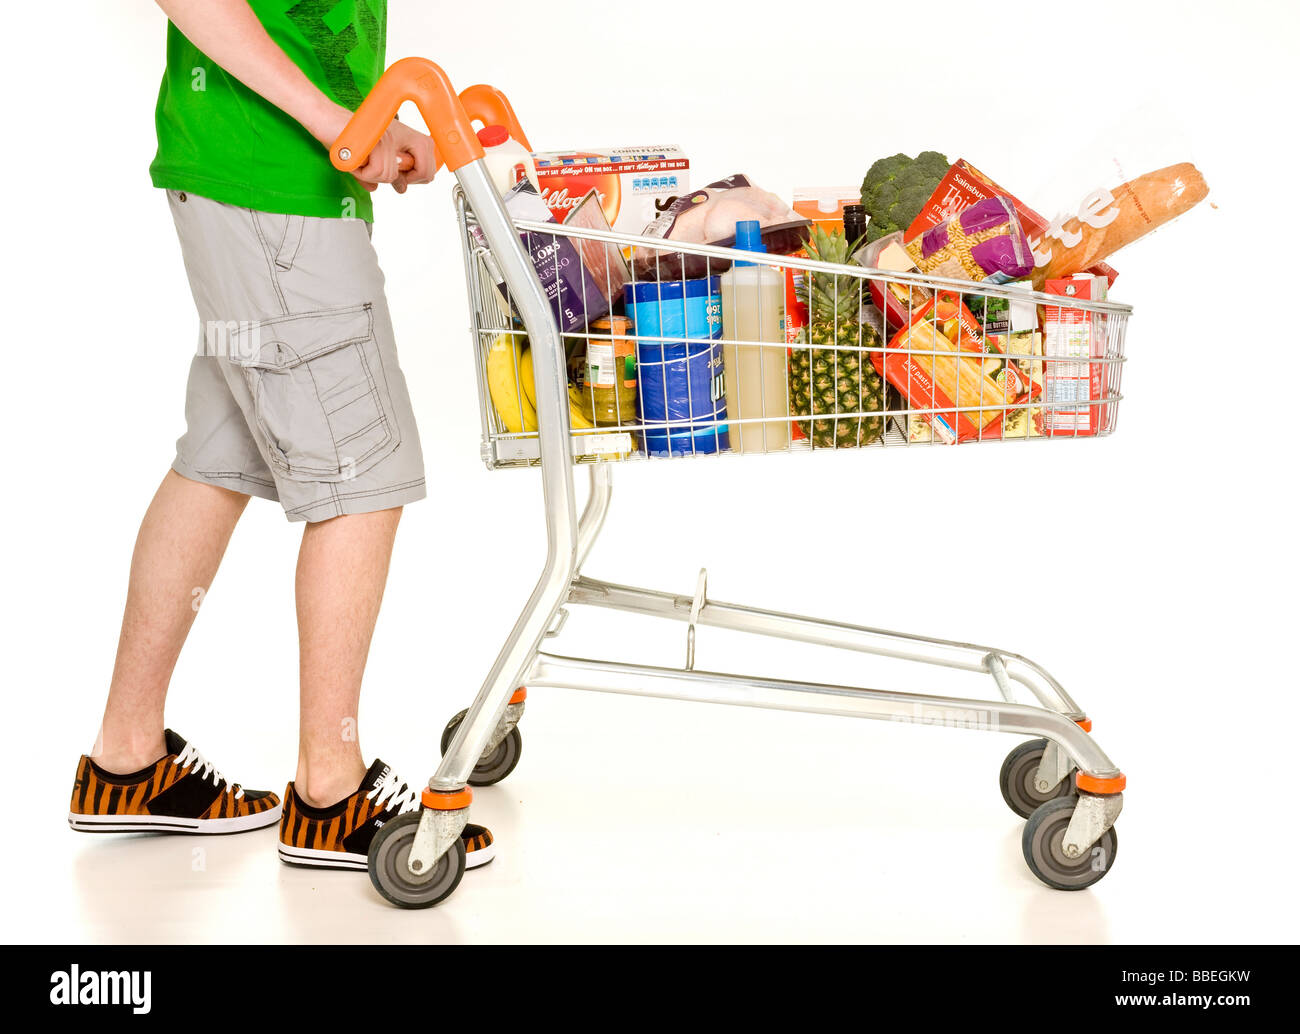 Casually dressed male pushing supermarket shopping trolley filled with weekly shopping on white background - Stock Image